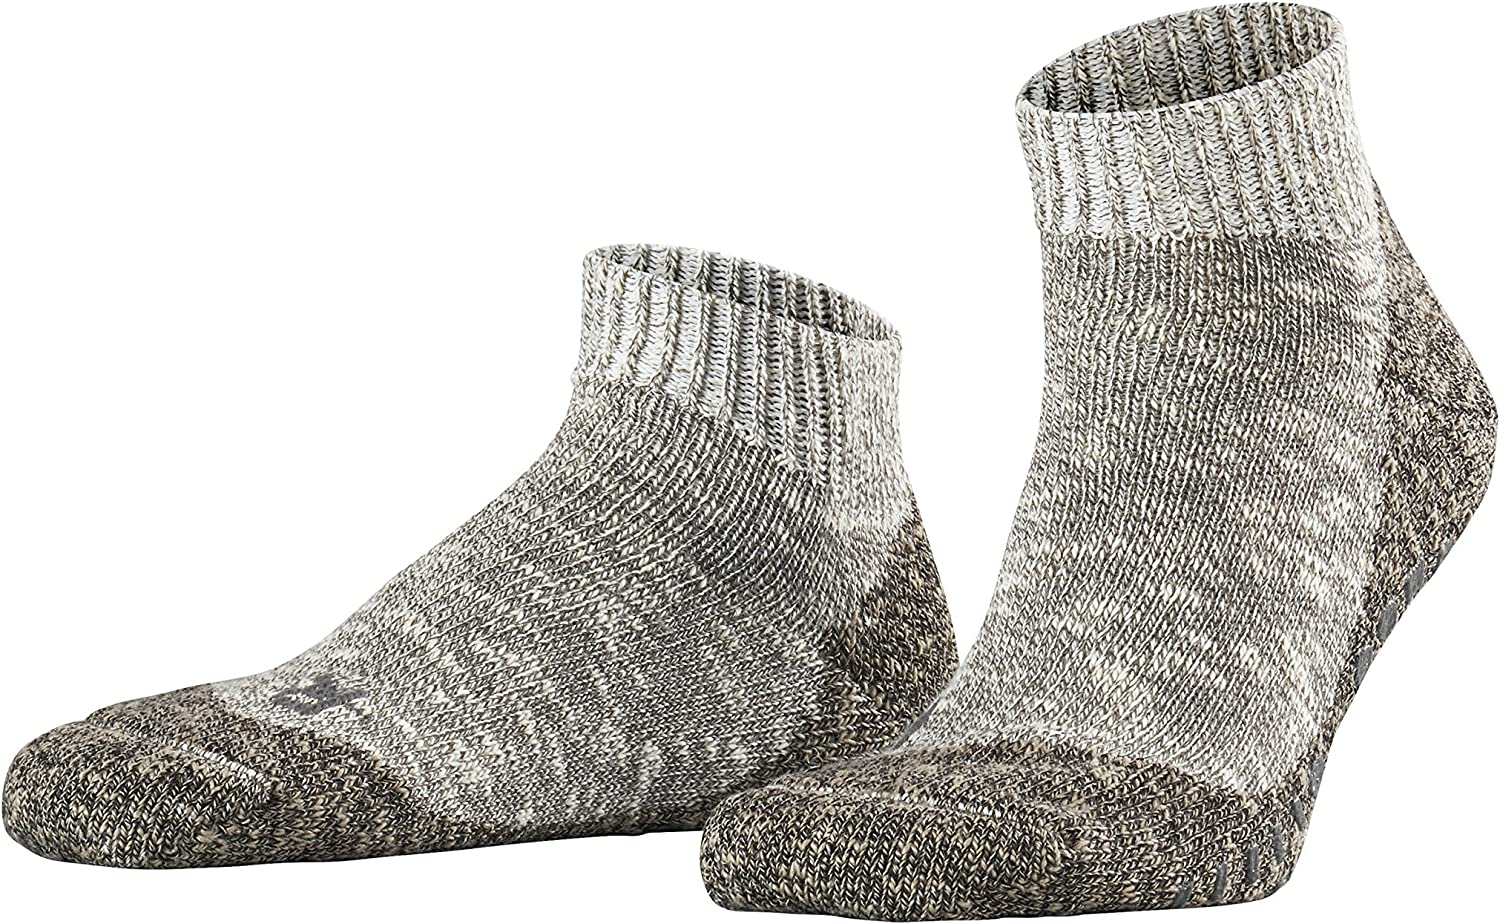 FALKE Mens Lodge Homepad Slipper Sock - 93% Cotton, Grey, US sizes 6.5 to 12, 1 Pair